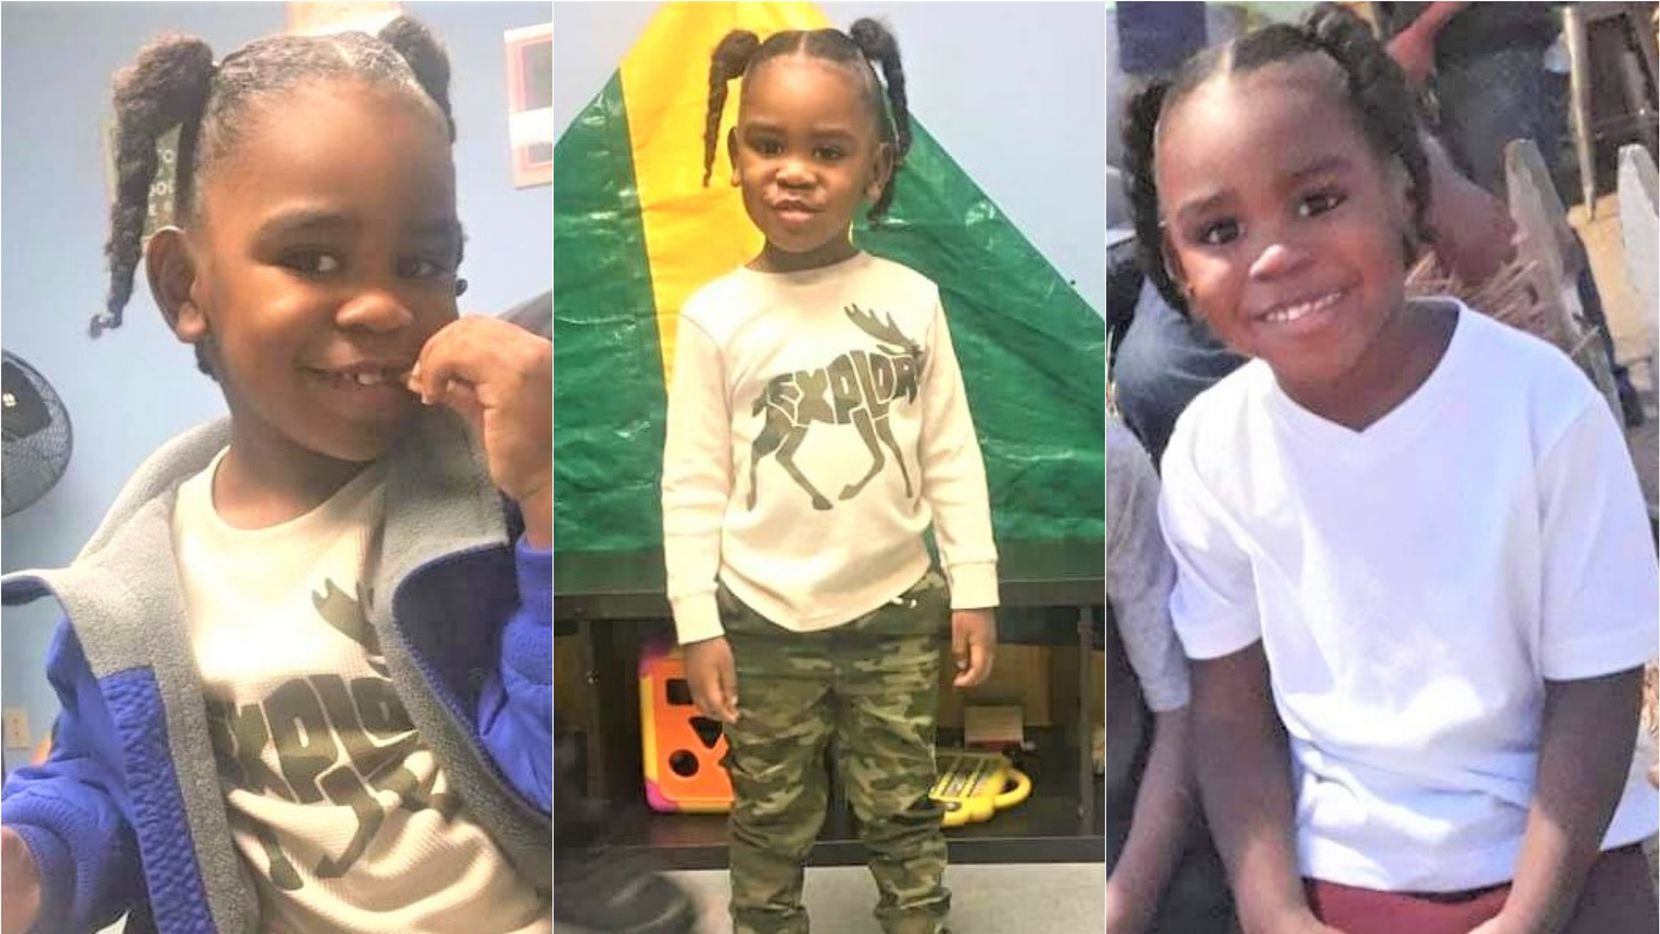 The lawsuit against ACH Child and Family Services, which managed the case of Amari Boone (above), alleges that details about his injuries were not entered into his file and that the agency didn't ensure he was safe in his foster home.